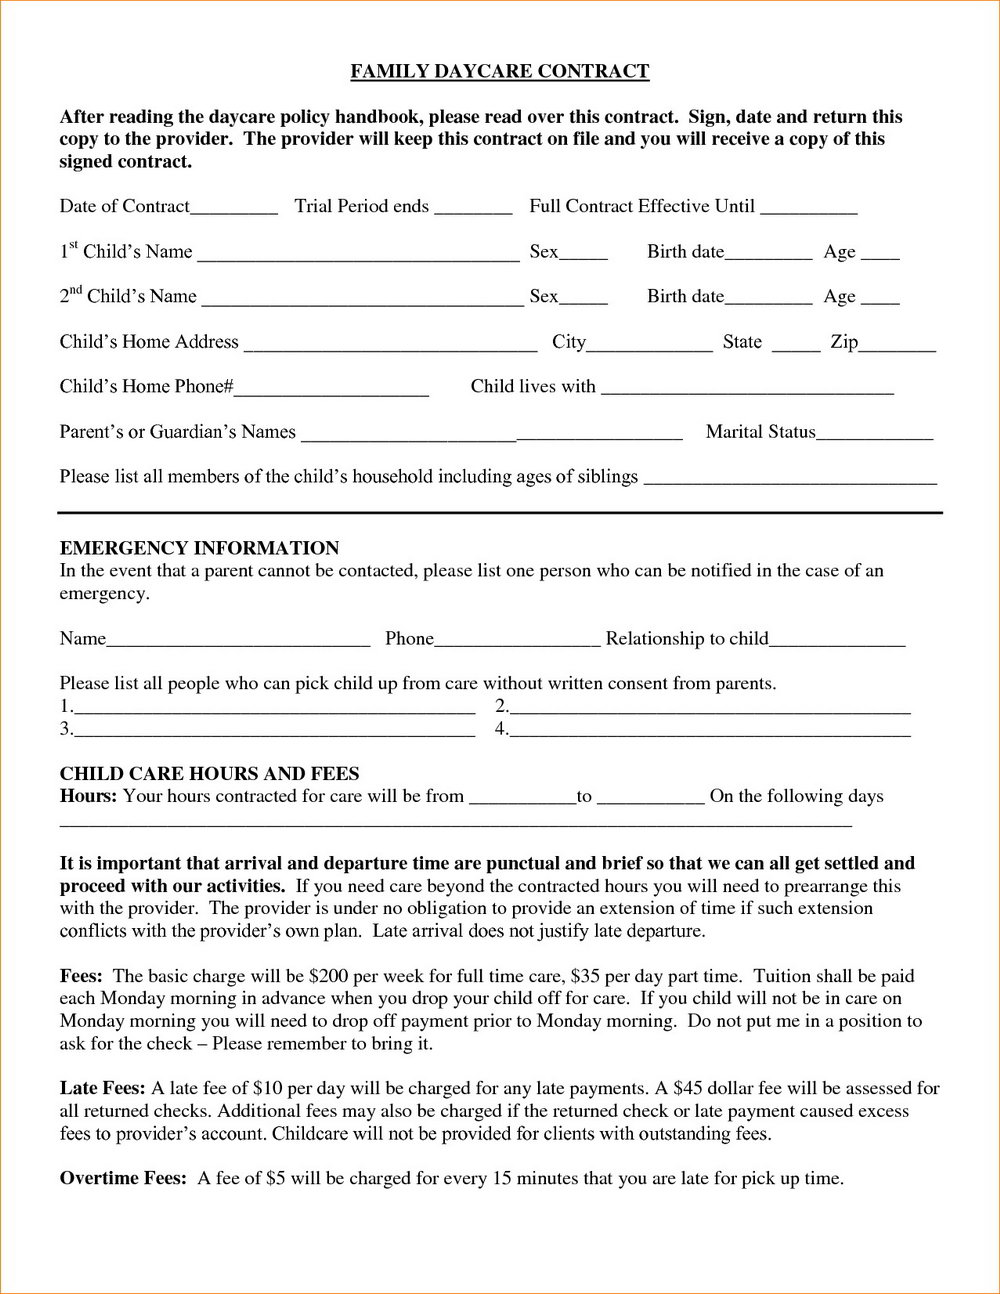 Roofing Contract Agreement Template